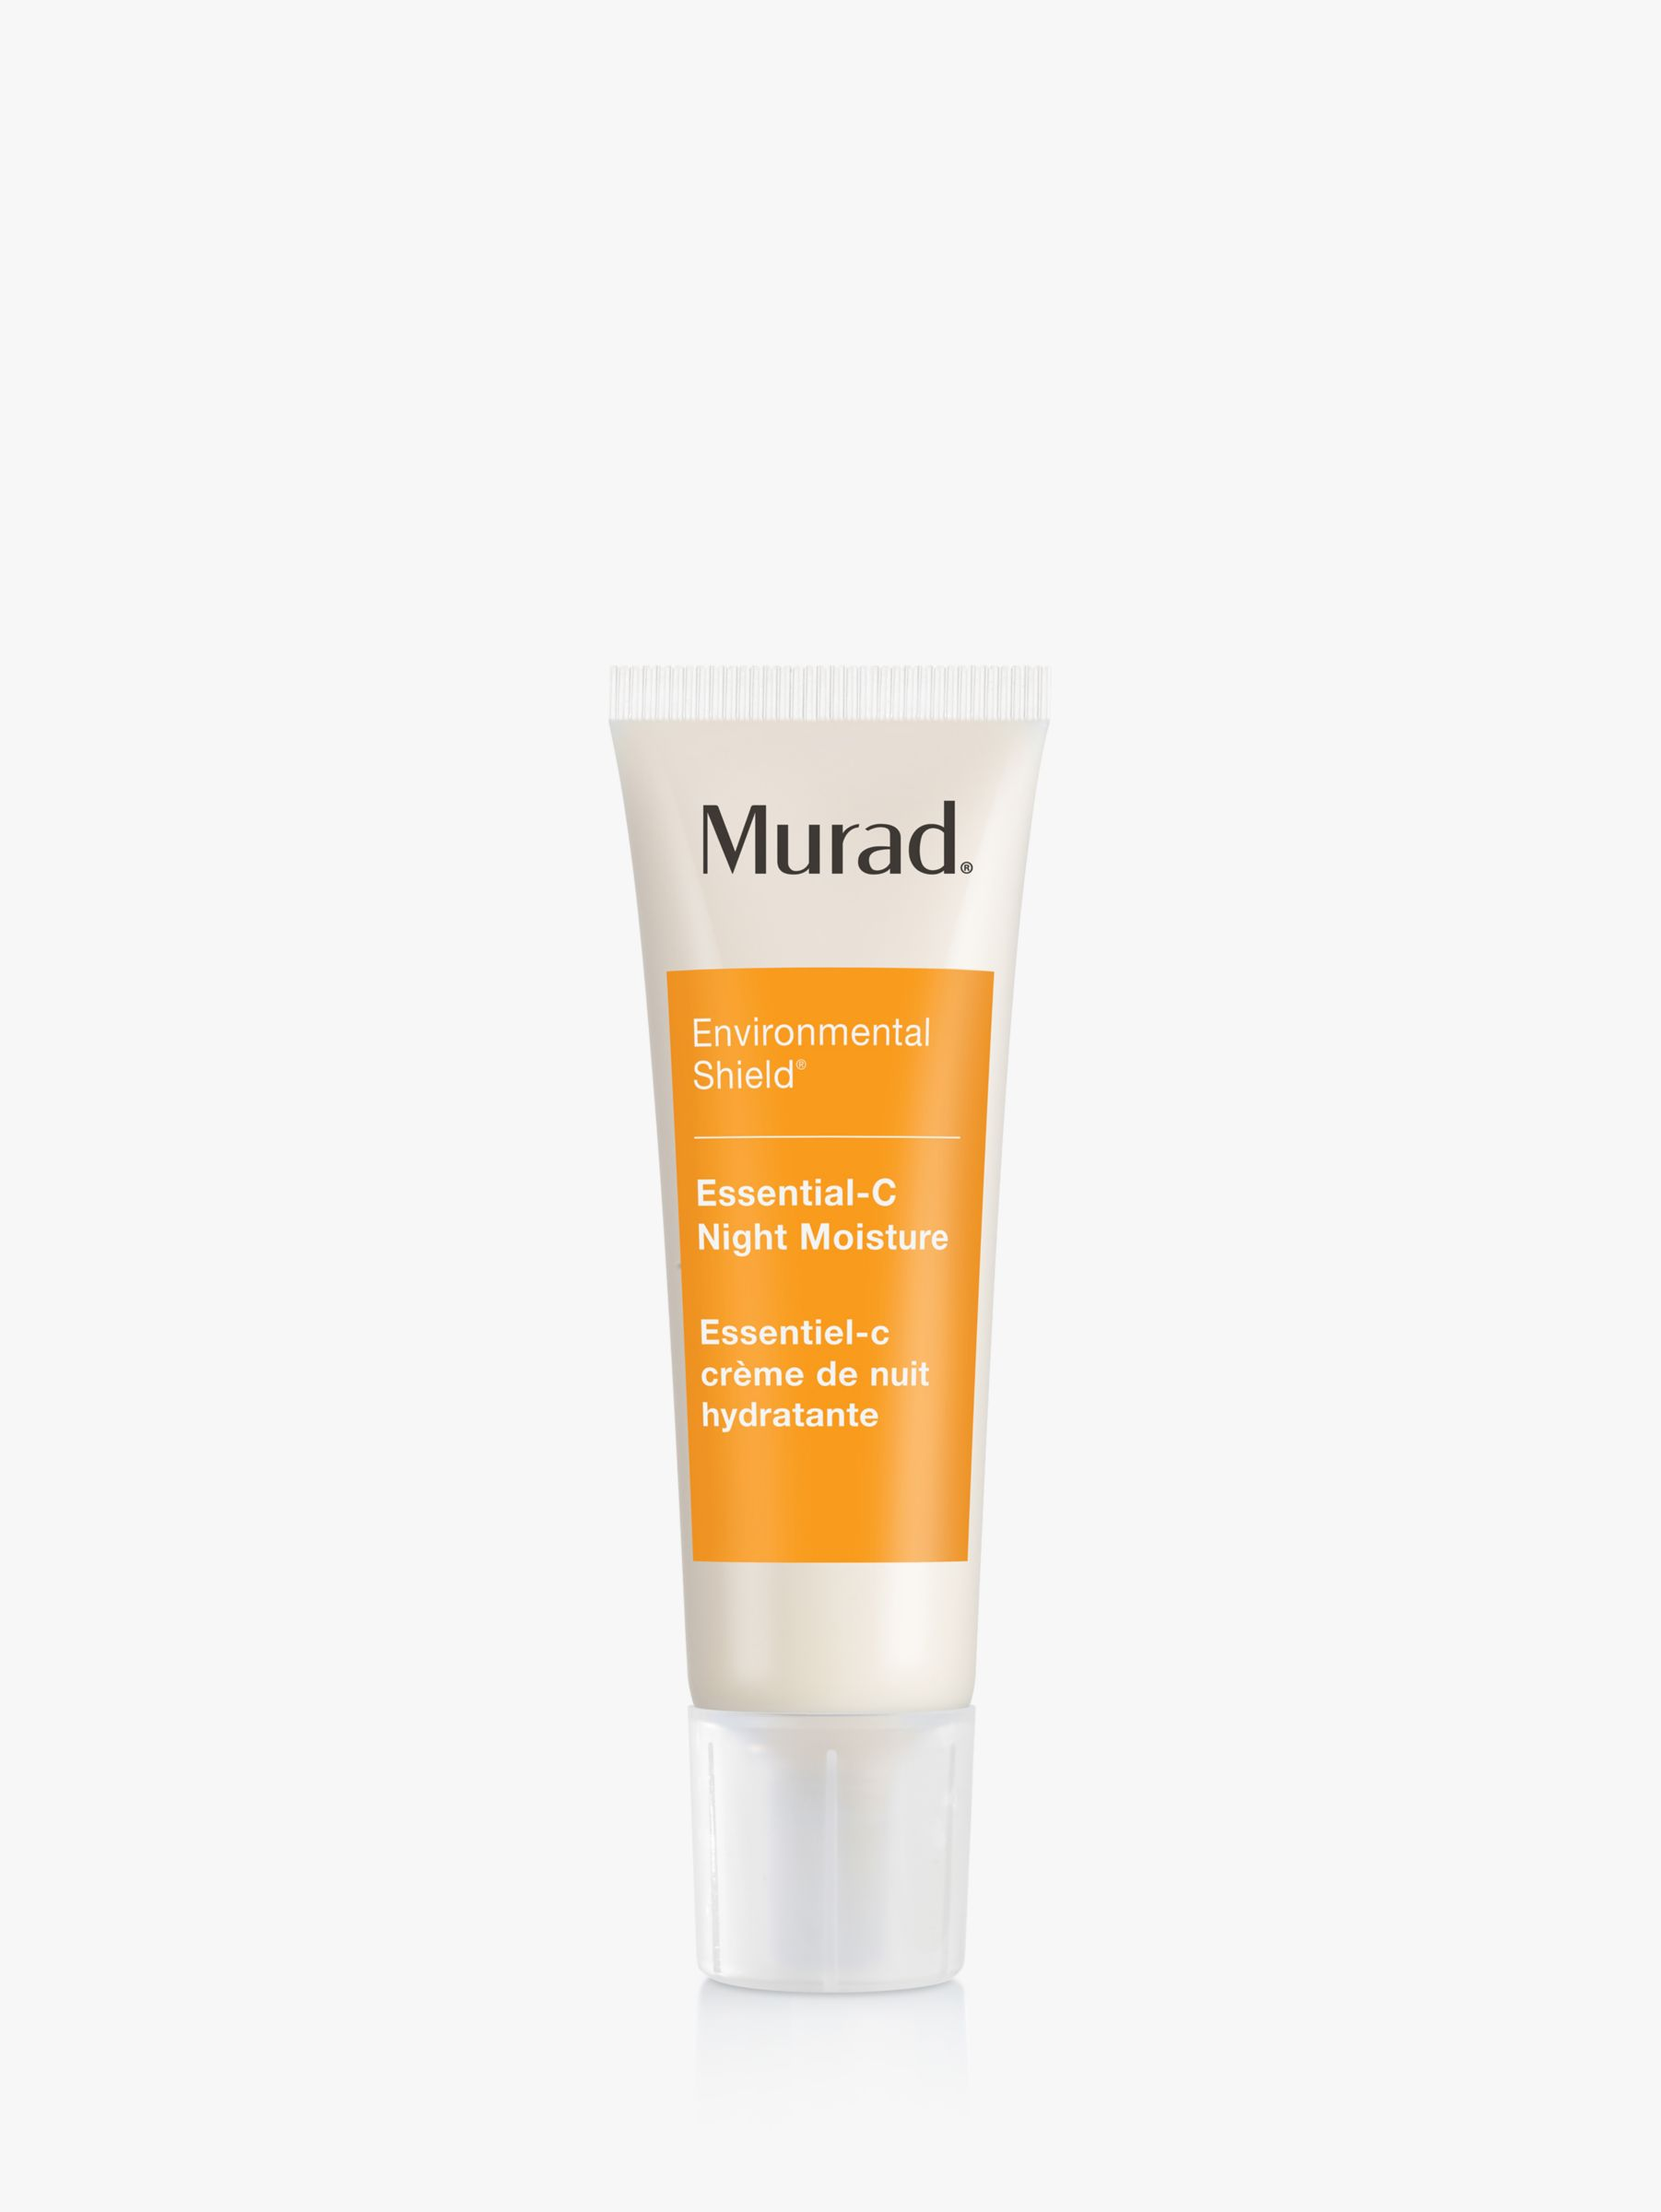 Murad Murad Essential-C Night Moisture, 50ml